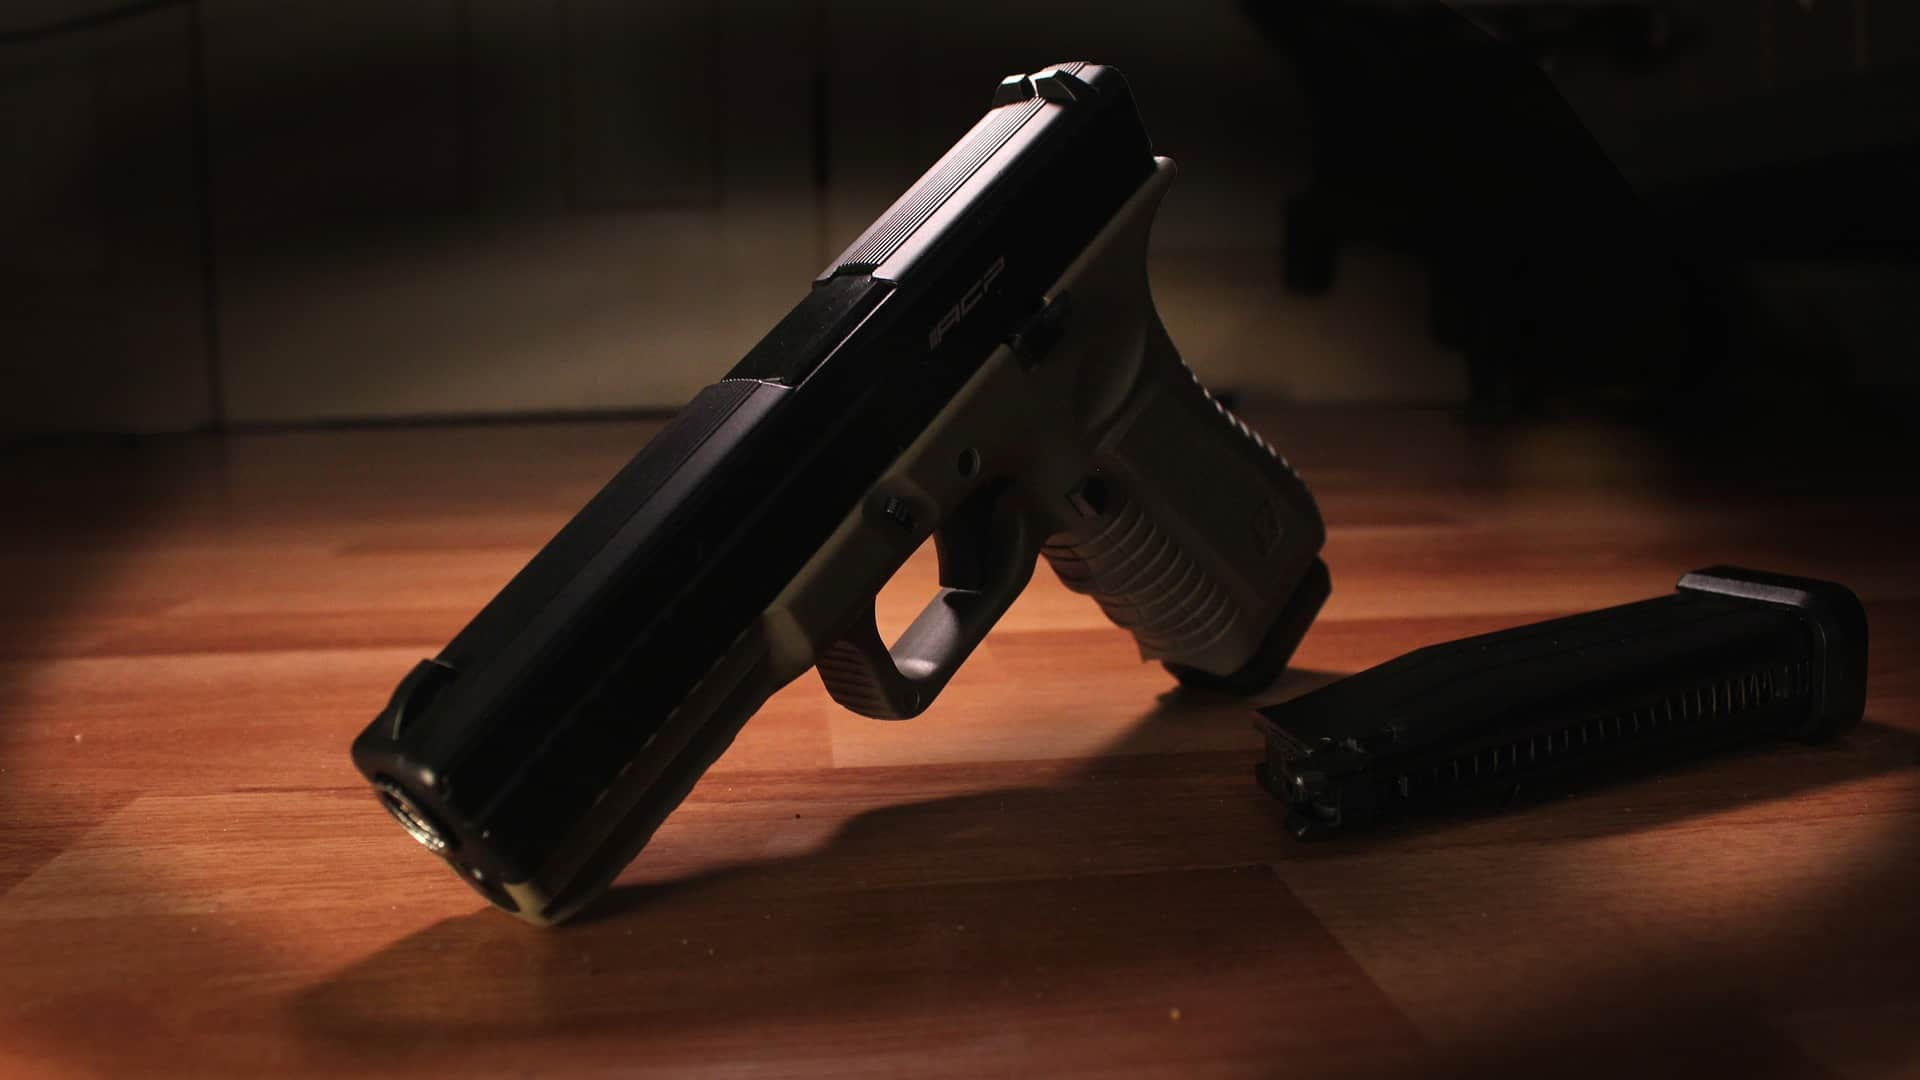 Two Lebanese Residents Accused of Trying to Export Guns in Honda